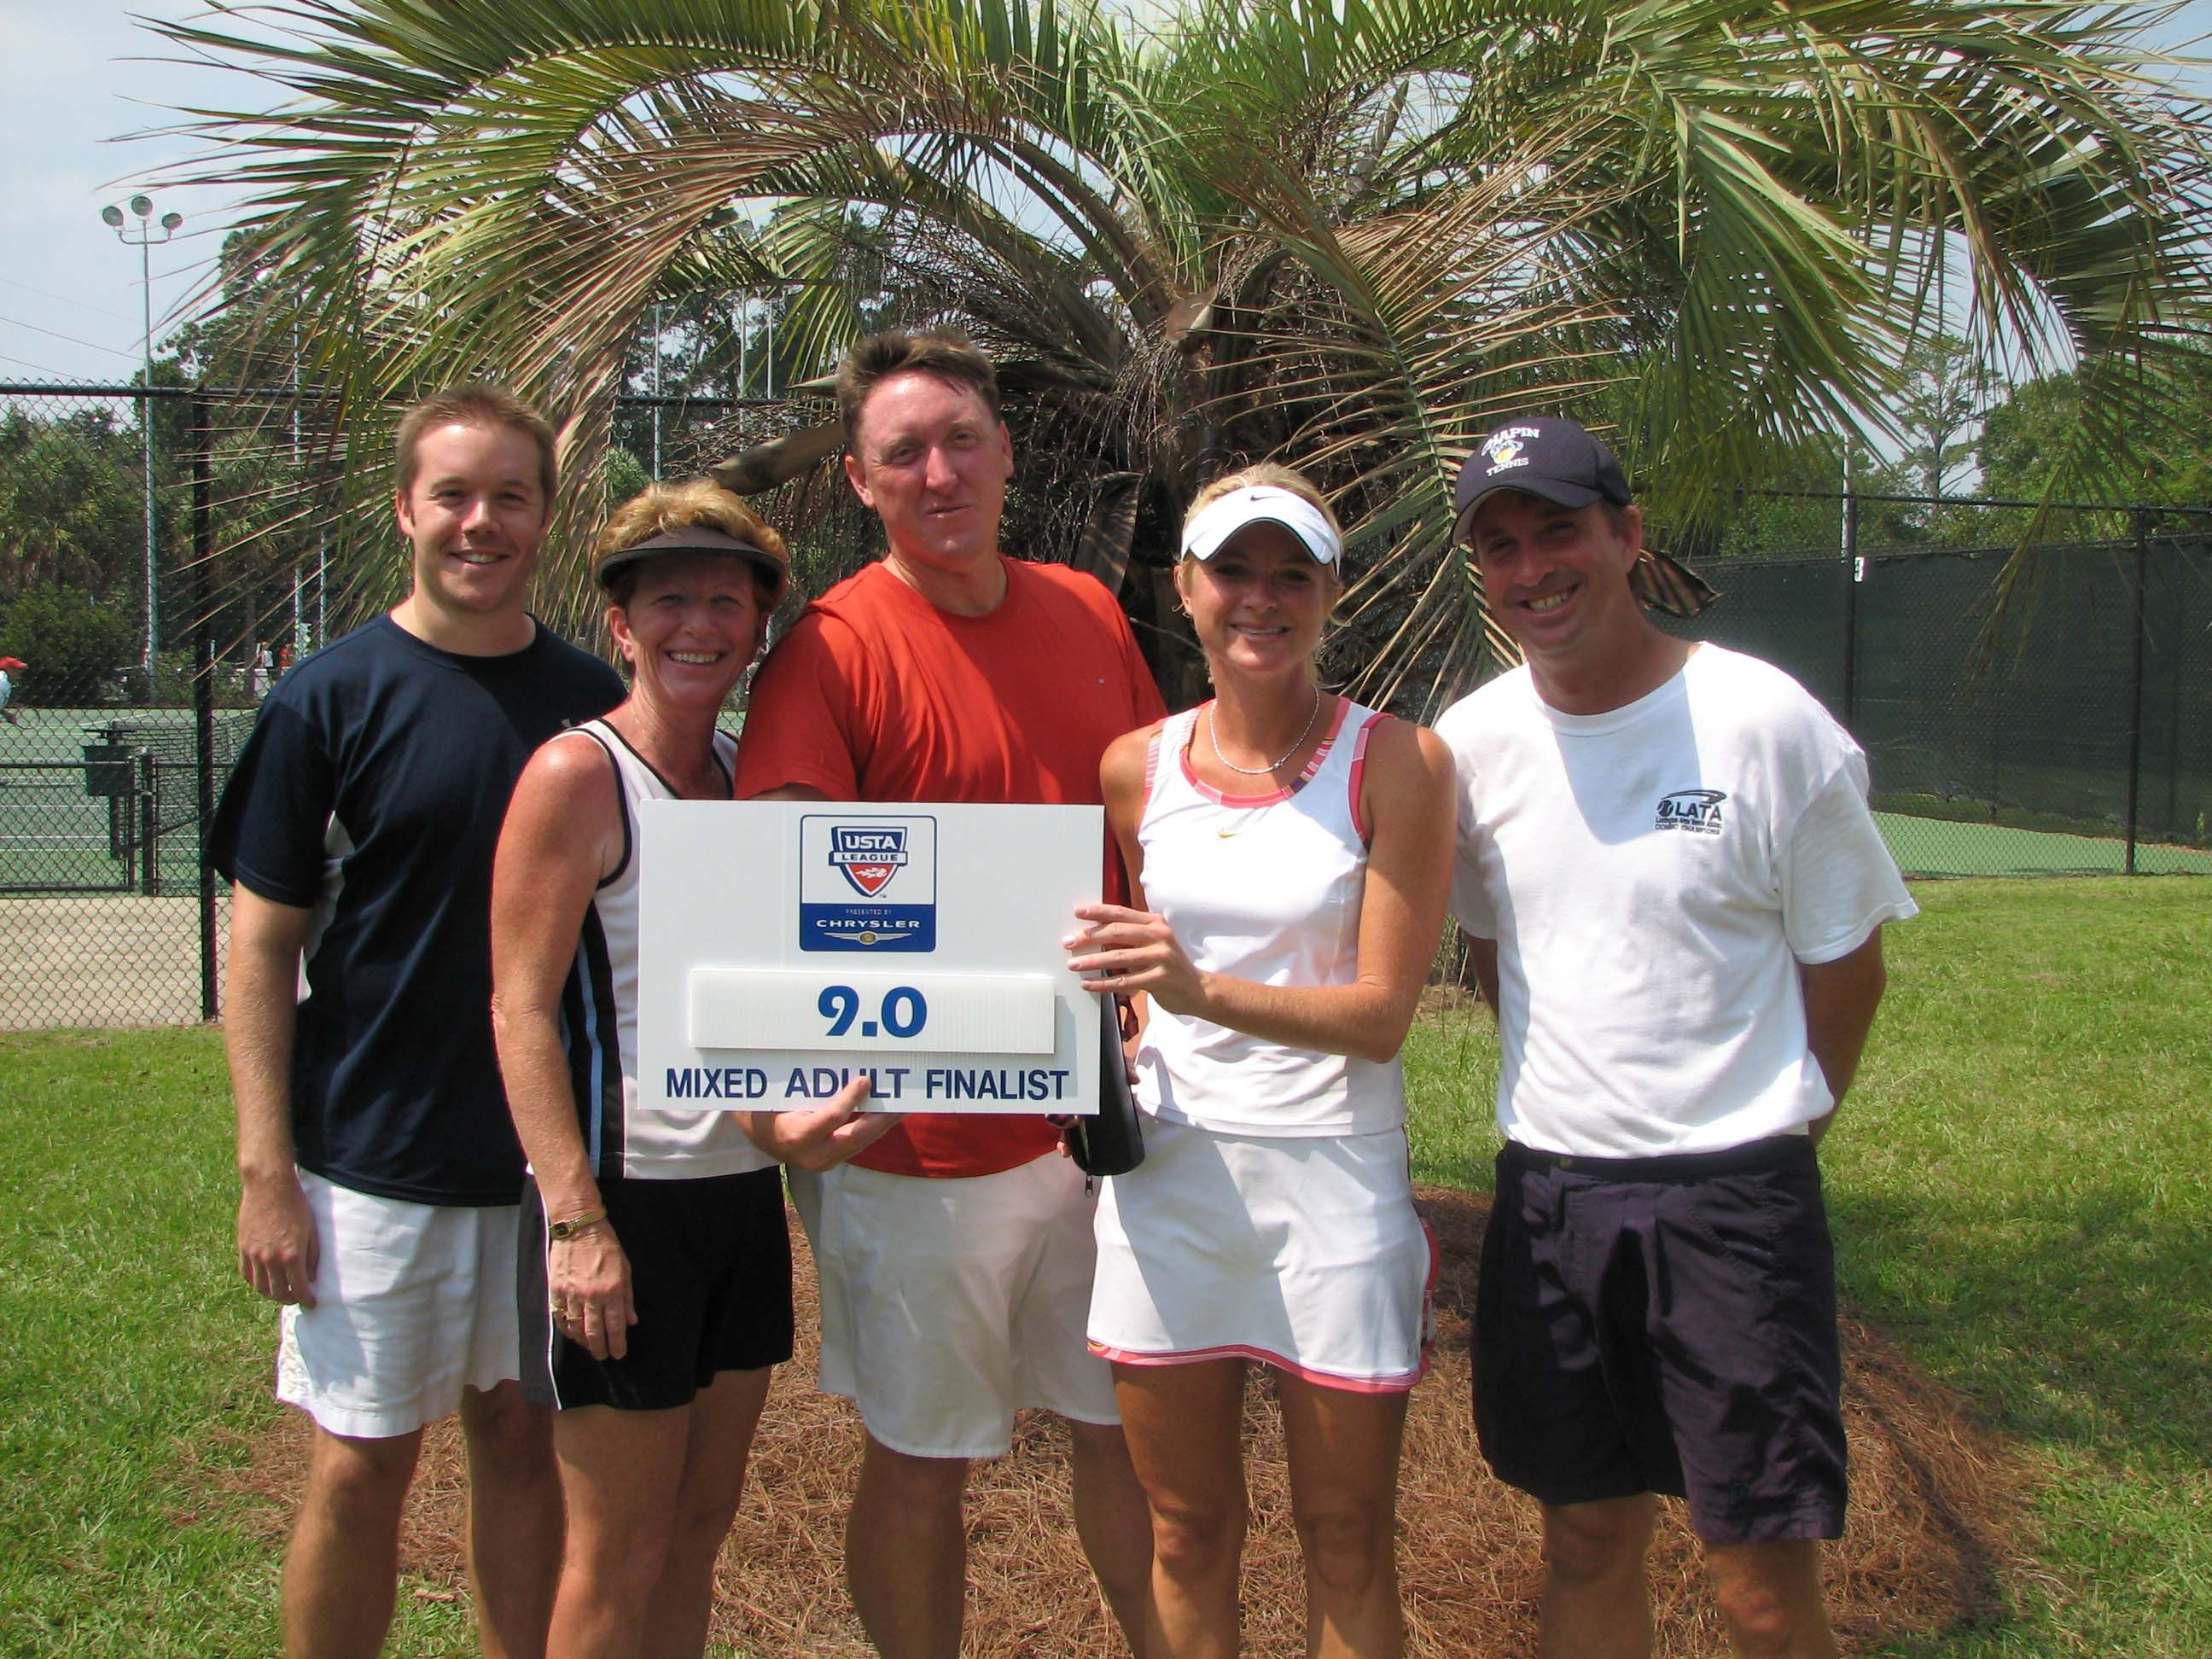 2006 Mixed 9 Adult Finalist